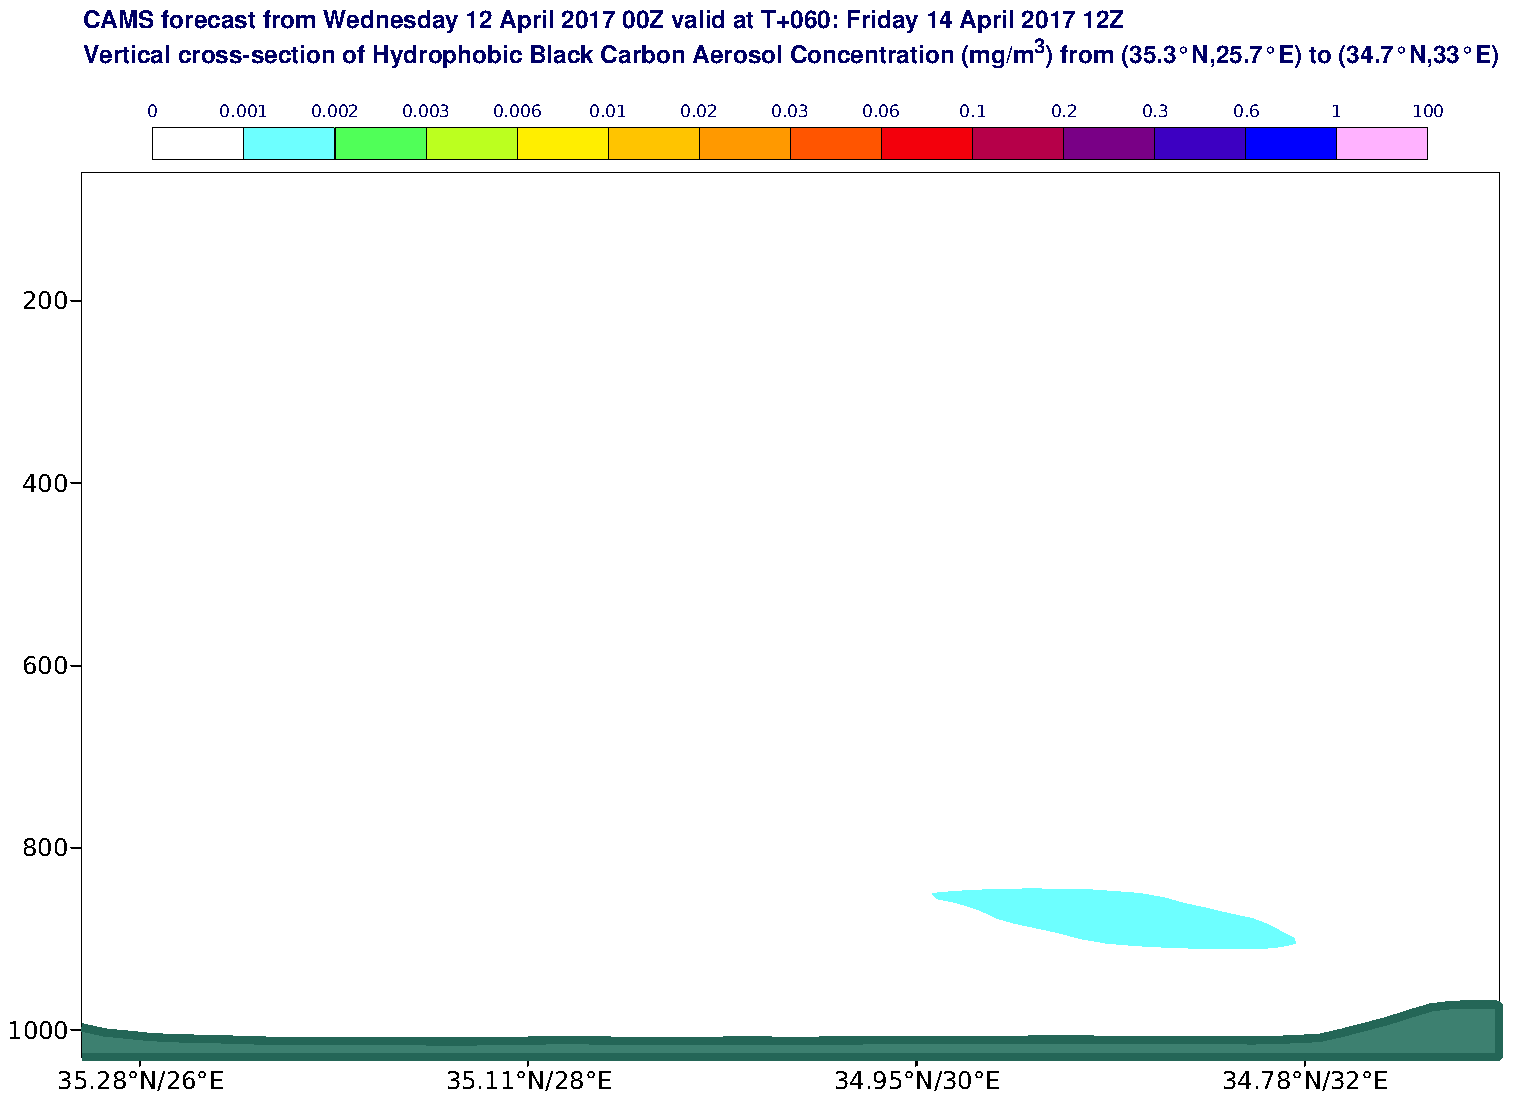 Vertical cross-section of Hydrophobic Black Carbon Aerosol Concentration (mg/m3) valid at T60 - 2017-04-14 12:00